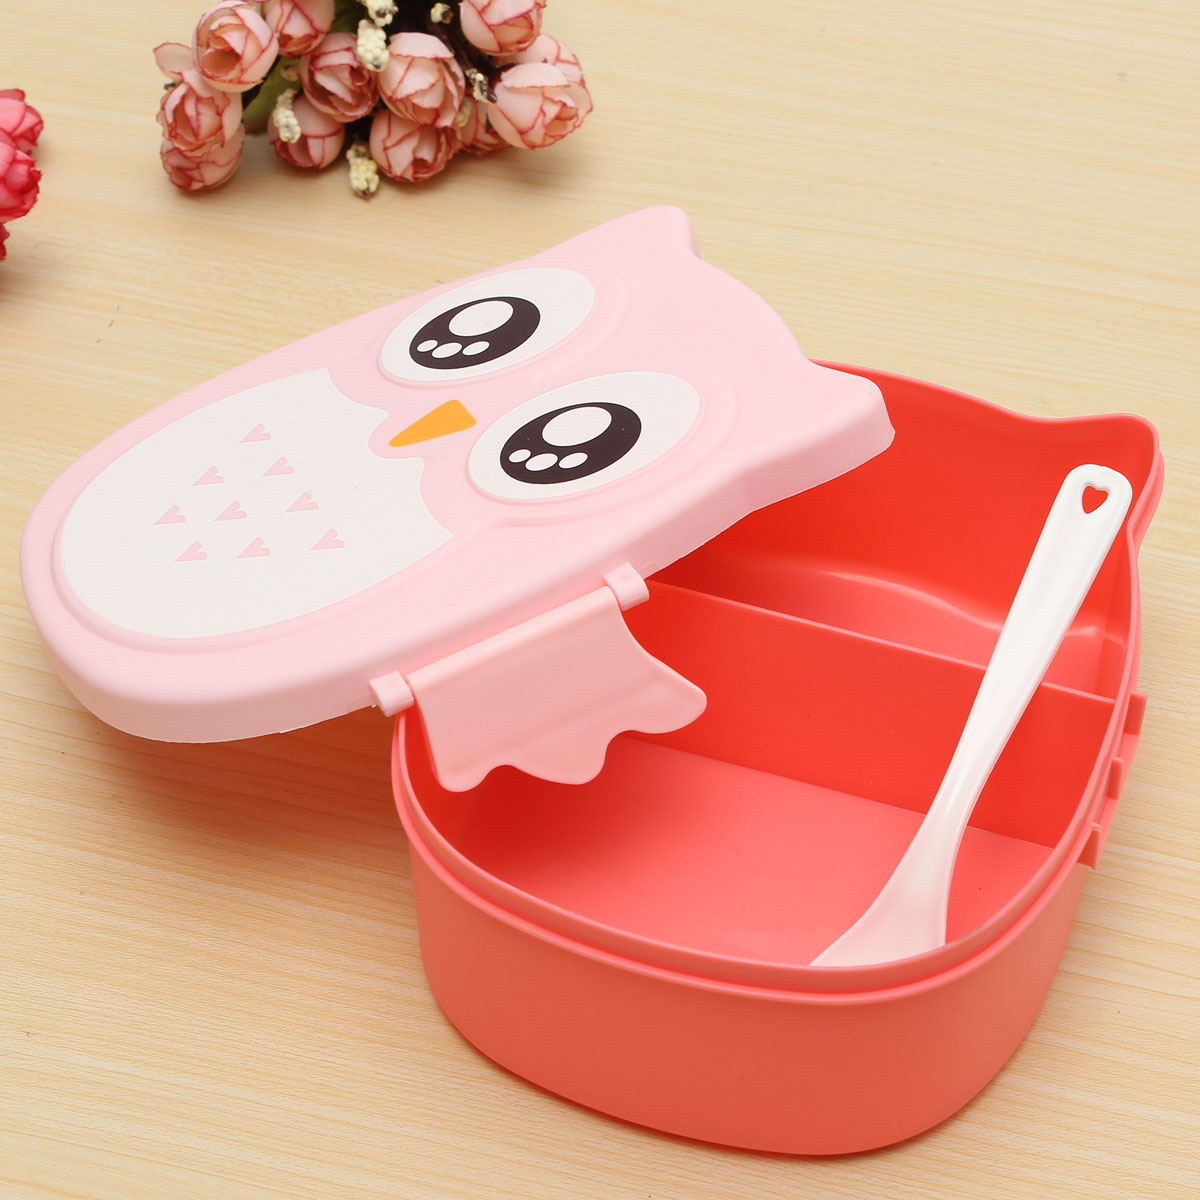 owl lunch bento box plastic cartoon lunch box food container bento box pink. Black Bedroom Furniture Sets. Home Design Ideas